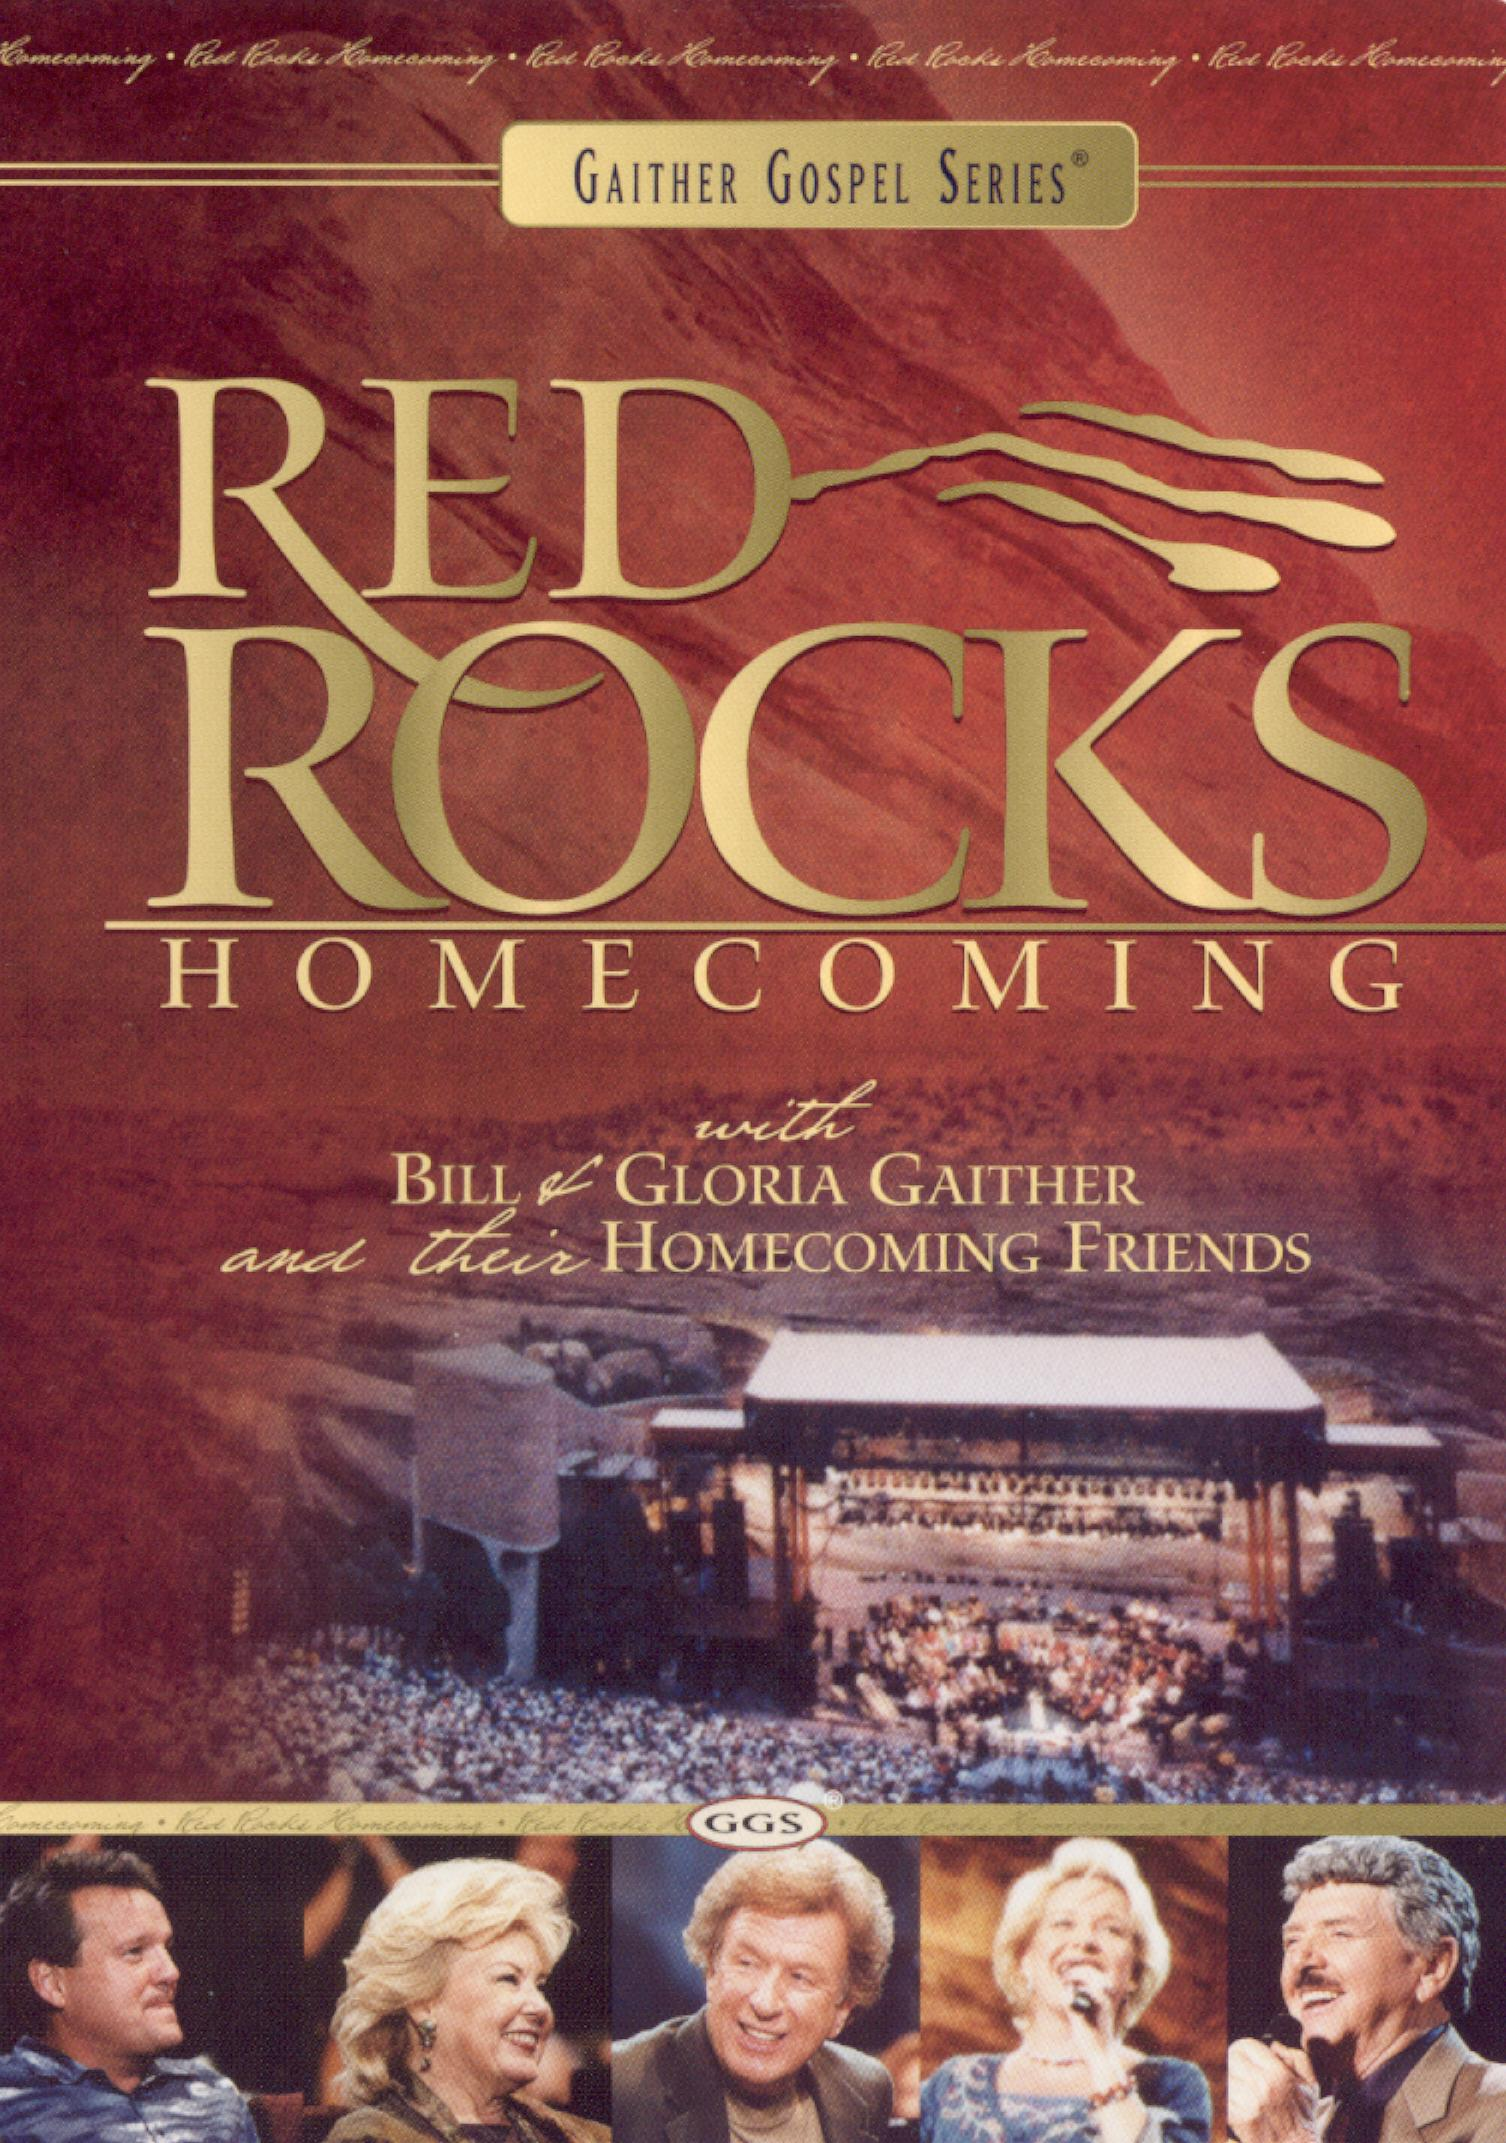 Bill and Gloria Gaither and Their Homecoming Friends: Red Rocks Homecoming